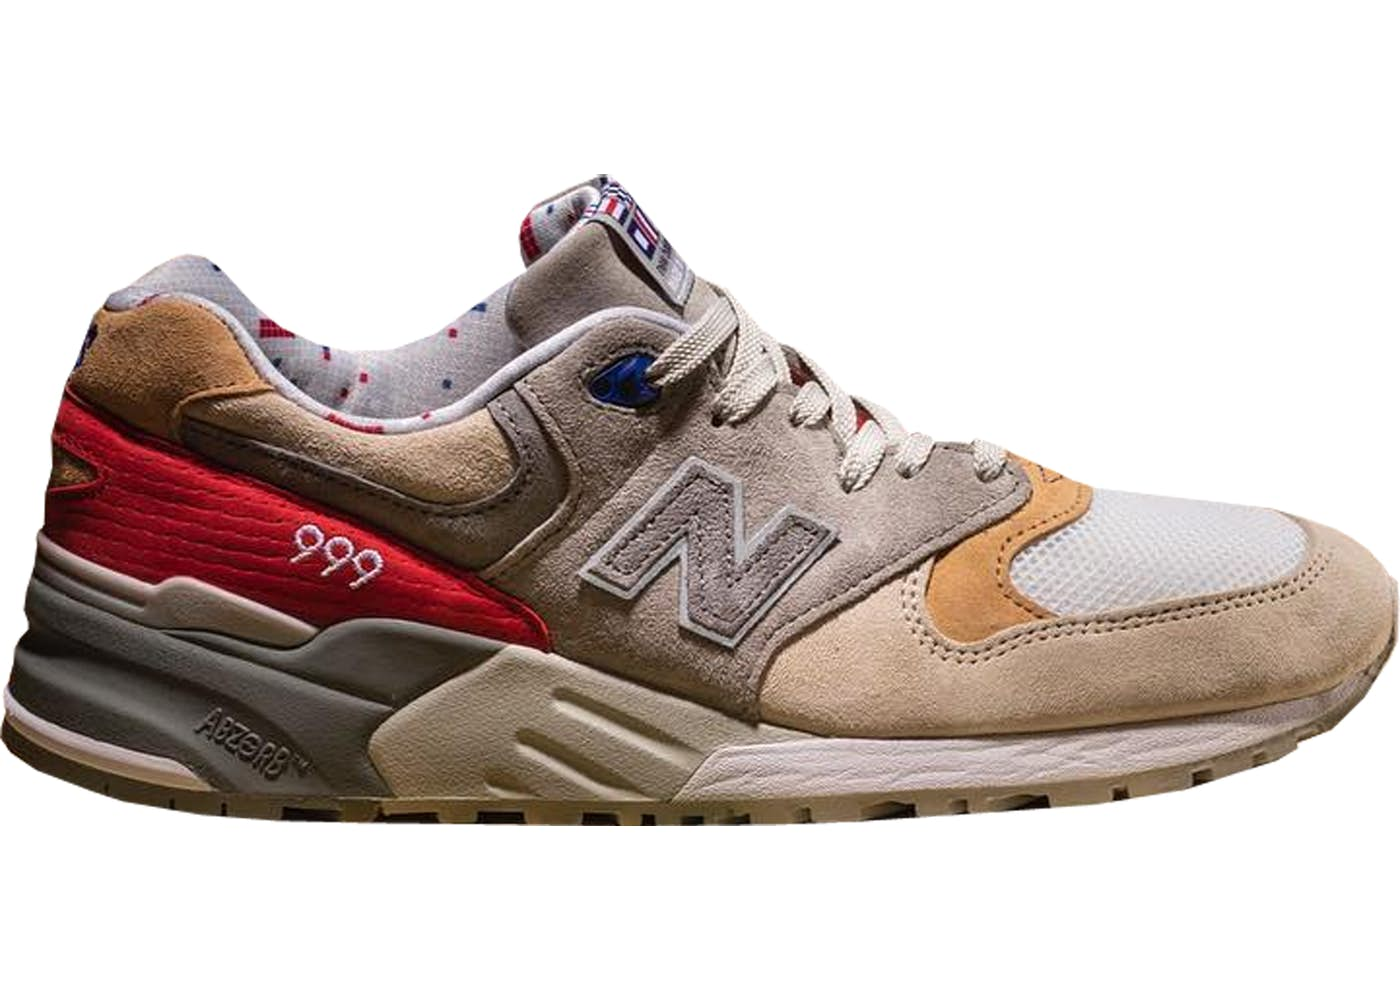 Balance 999 concepts hyannis red new balance 999 concepts hyannis red biocorpaavc Choice Image